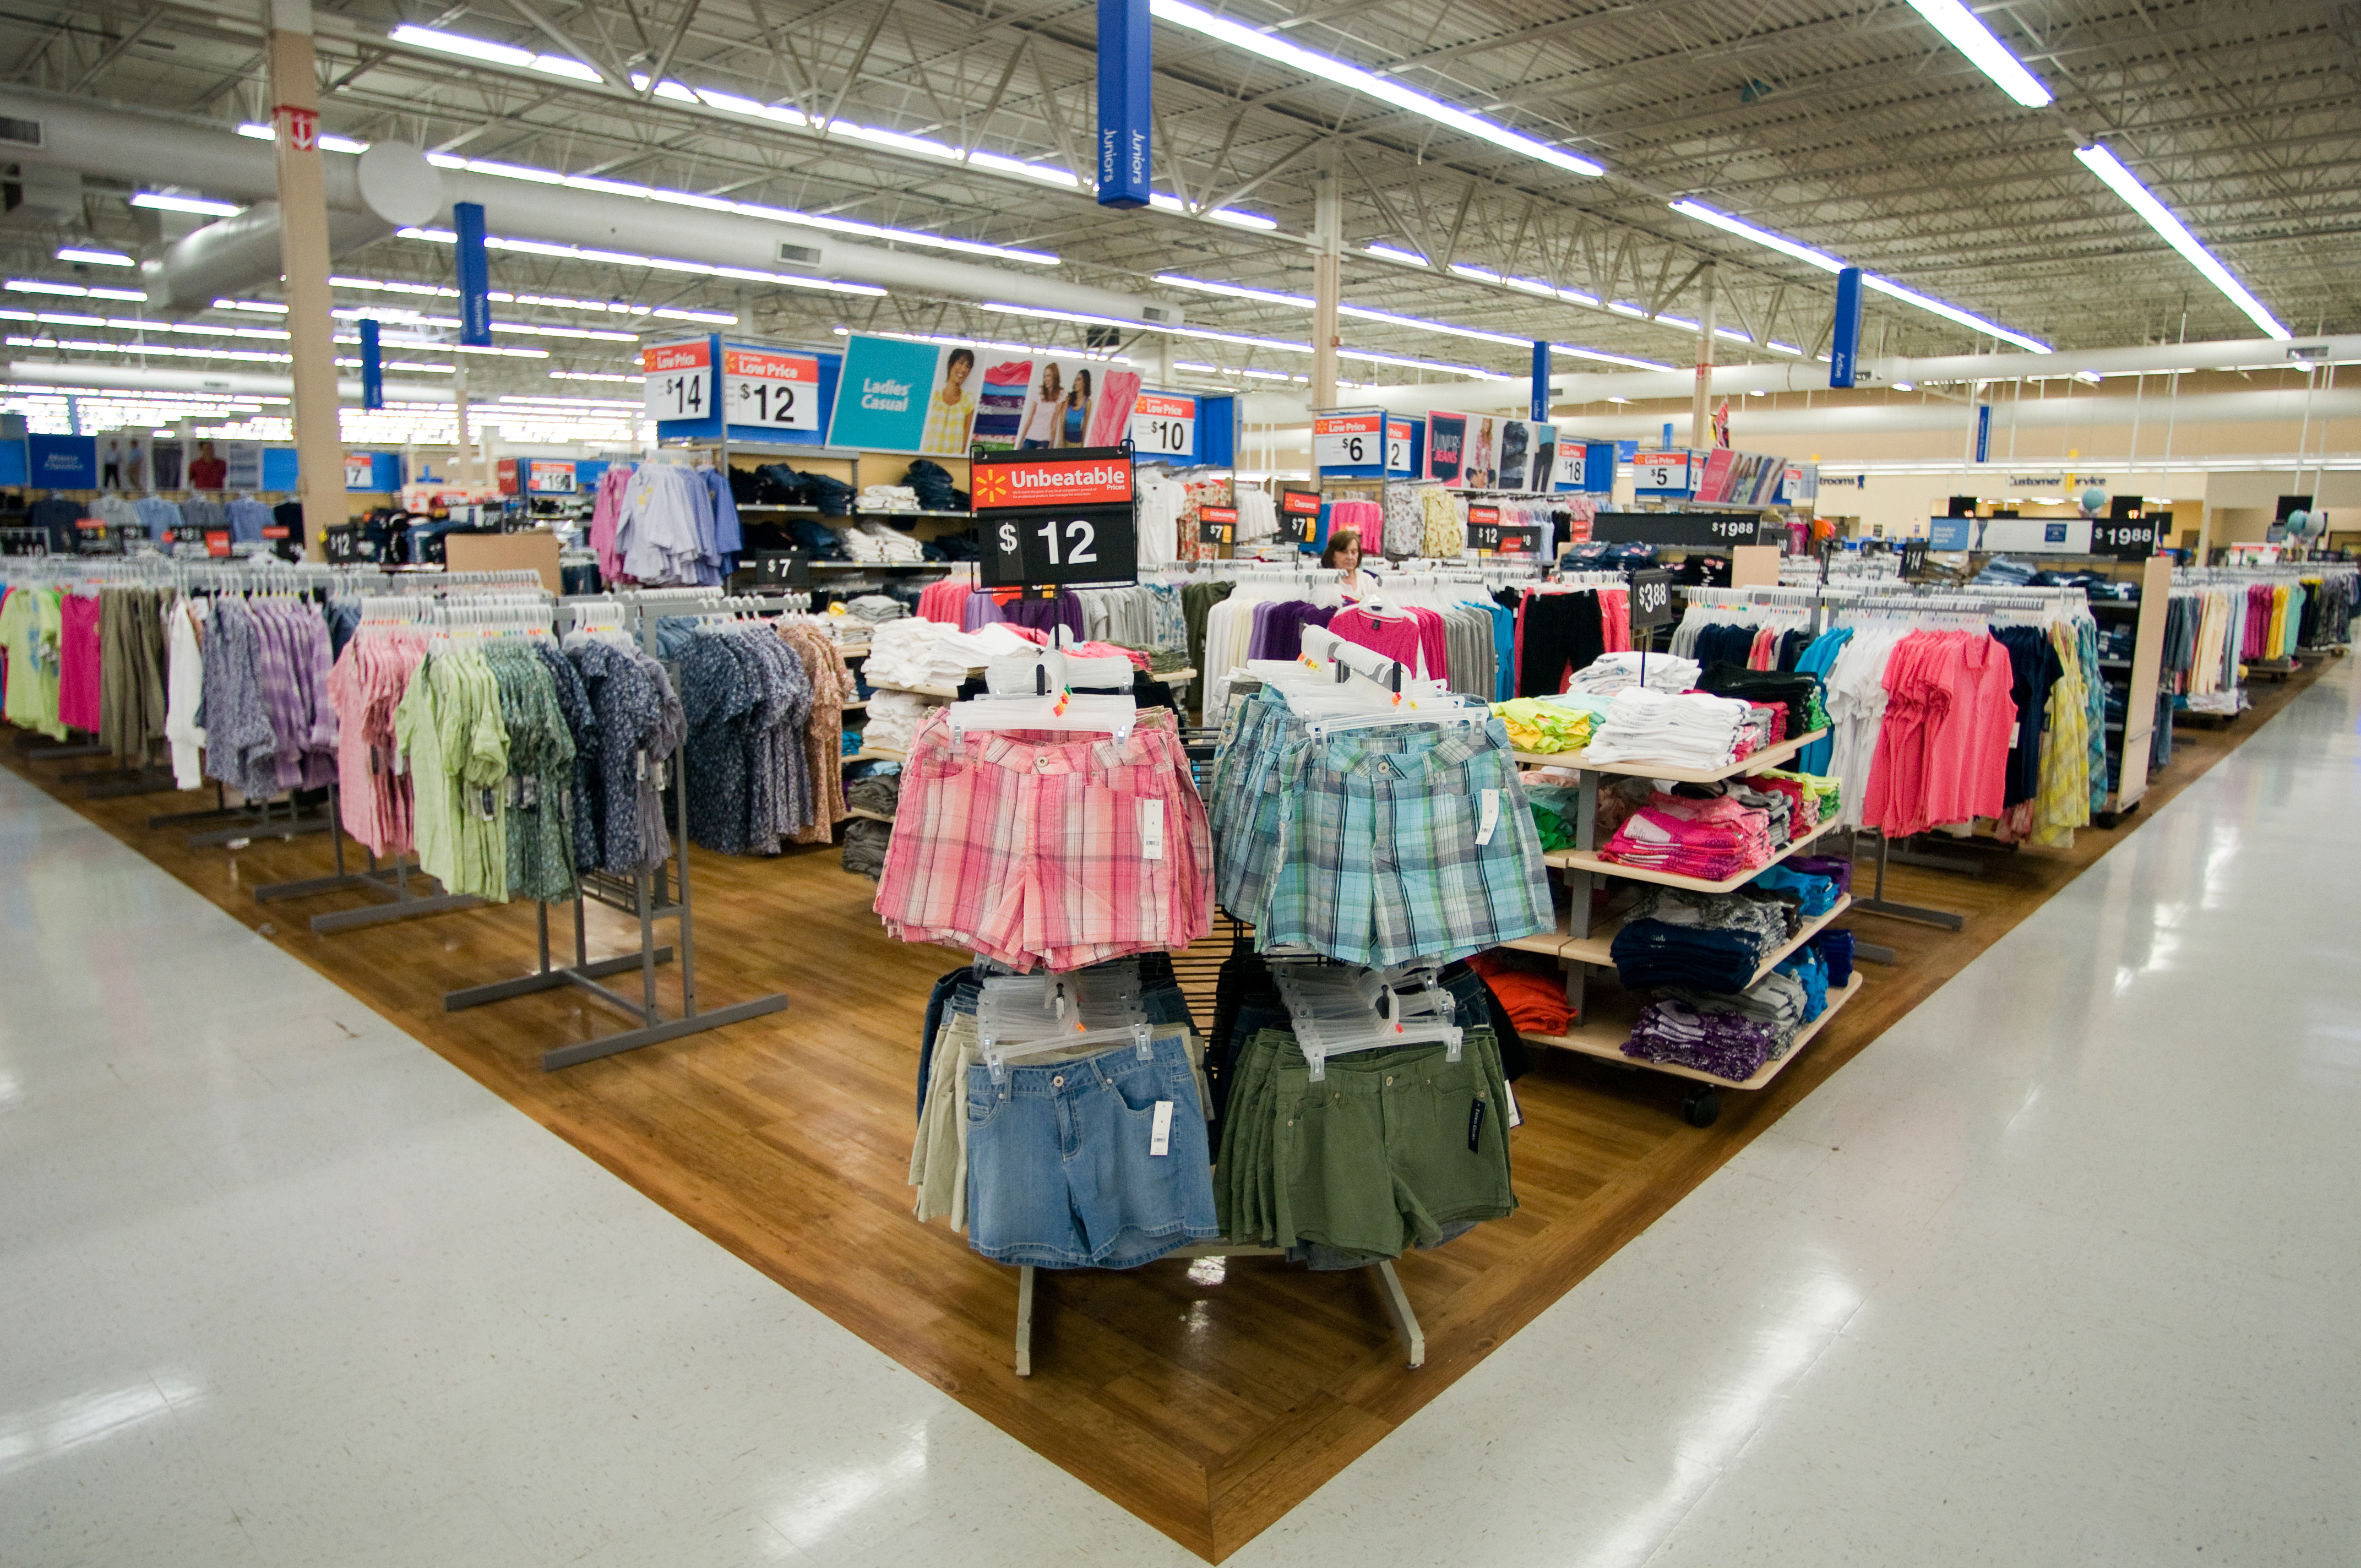 How can apparel retailers compete with wal mart